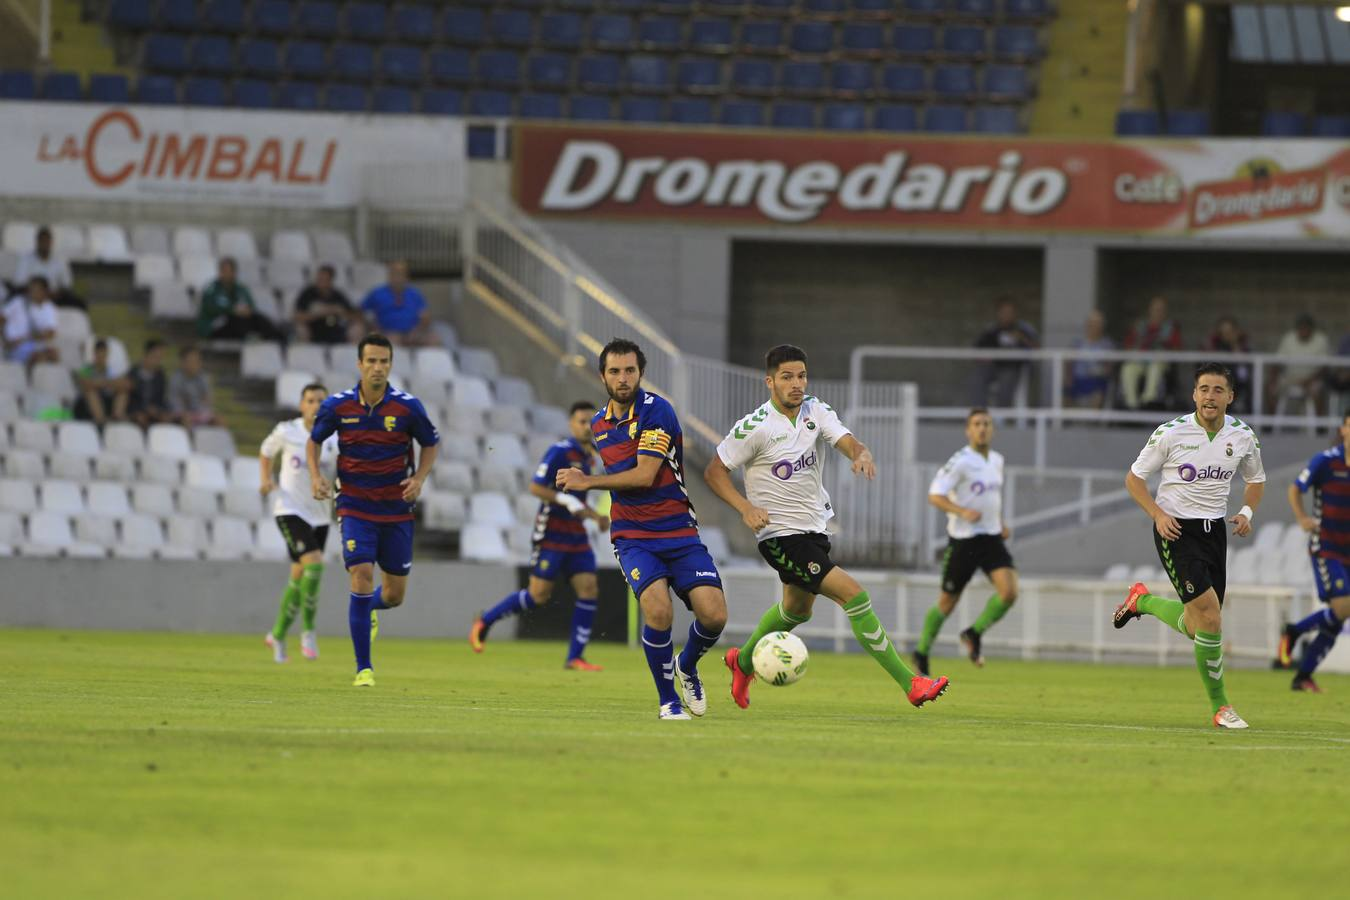 Racing - Llagostera